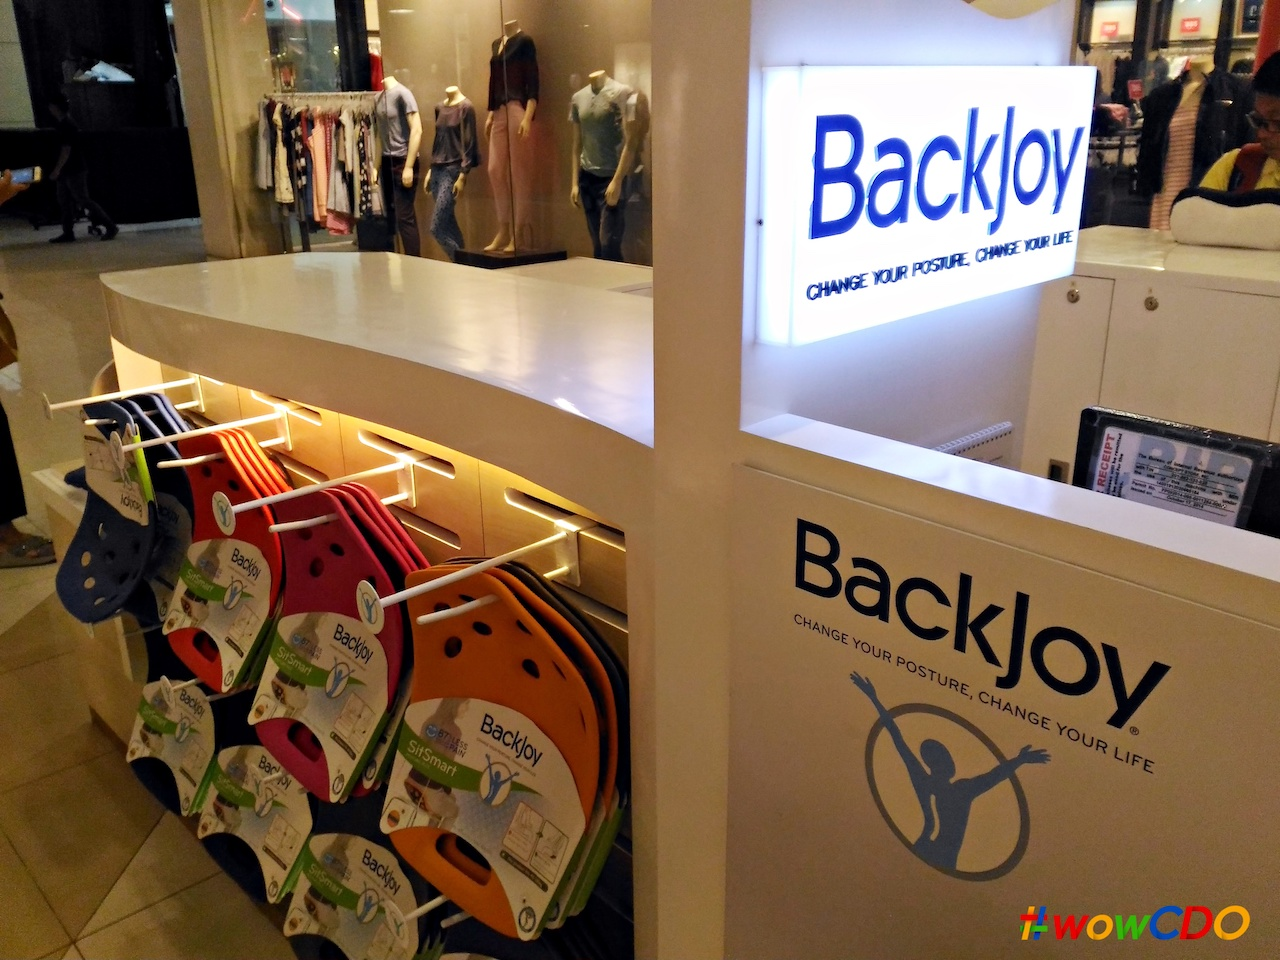 BackJoy kiosk at Centrio Mall.